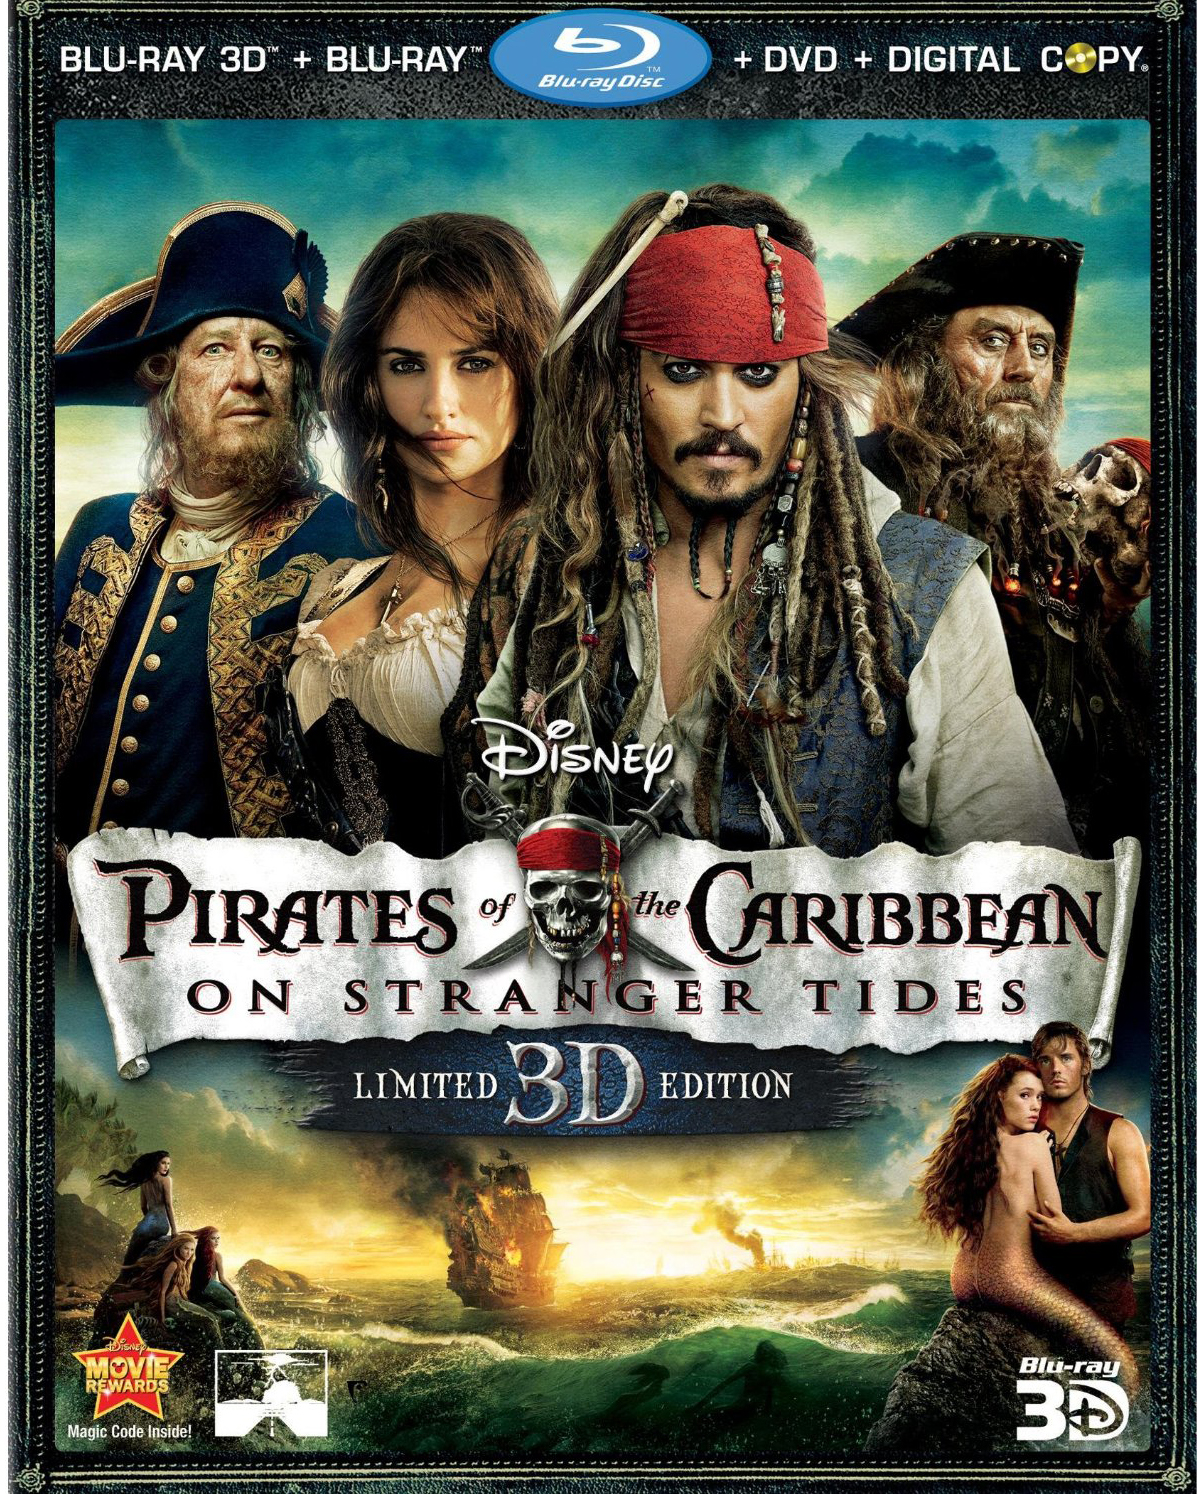 PIRATES BOX ART